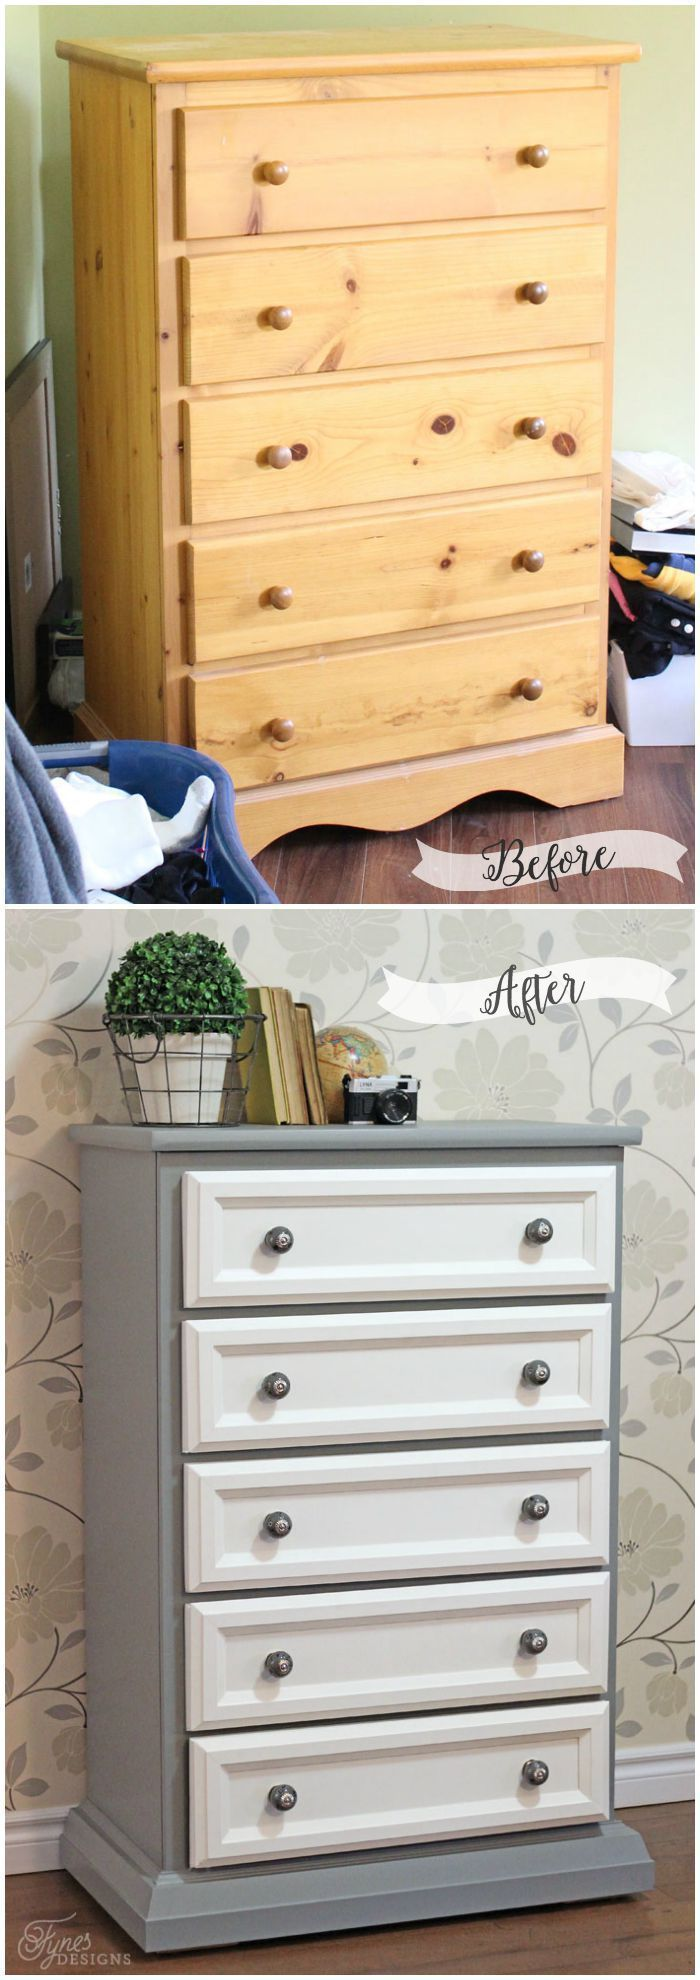 25+ best ideas about Furniture Makeover on Pinterest ...